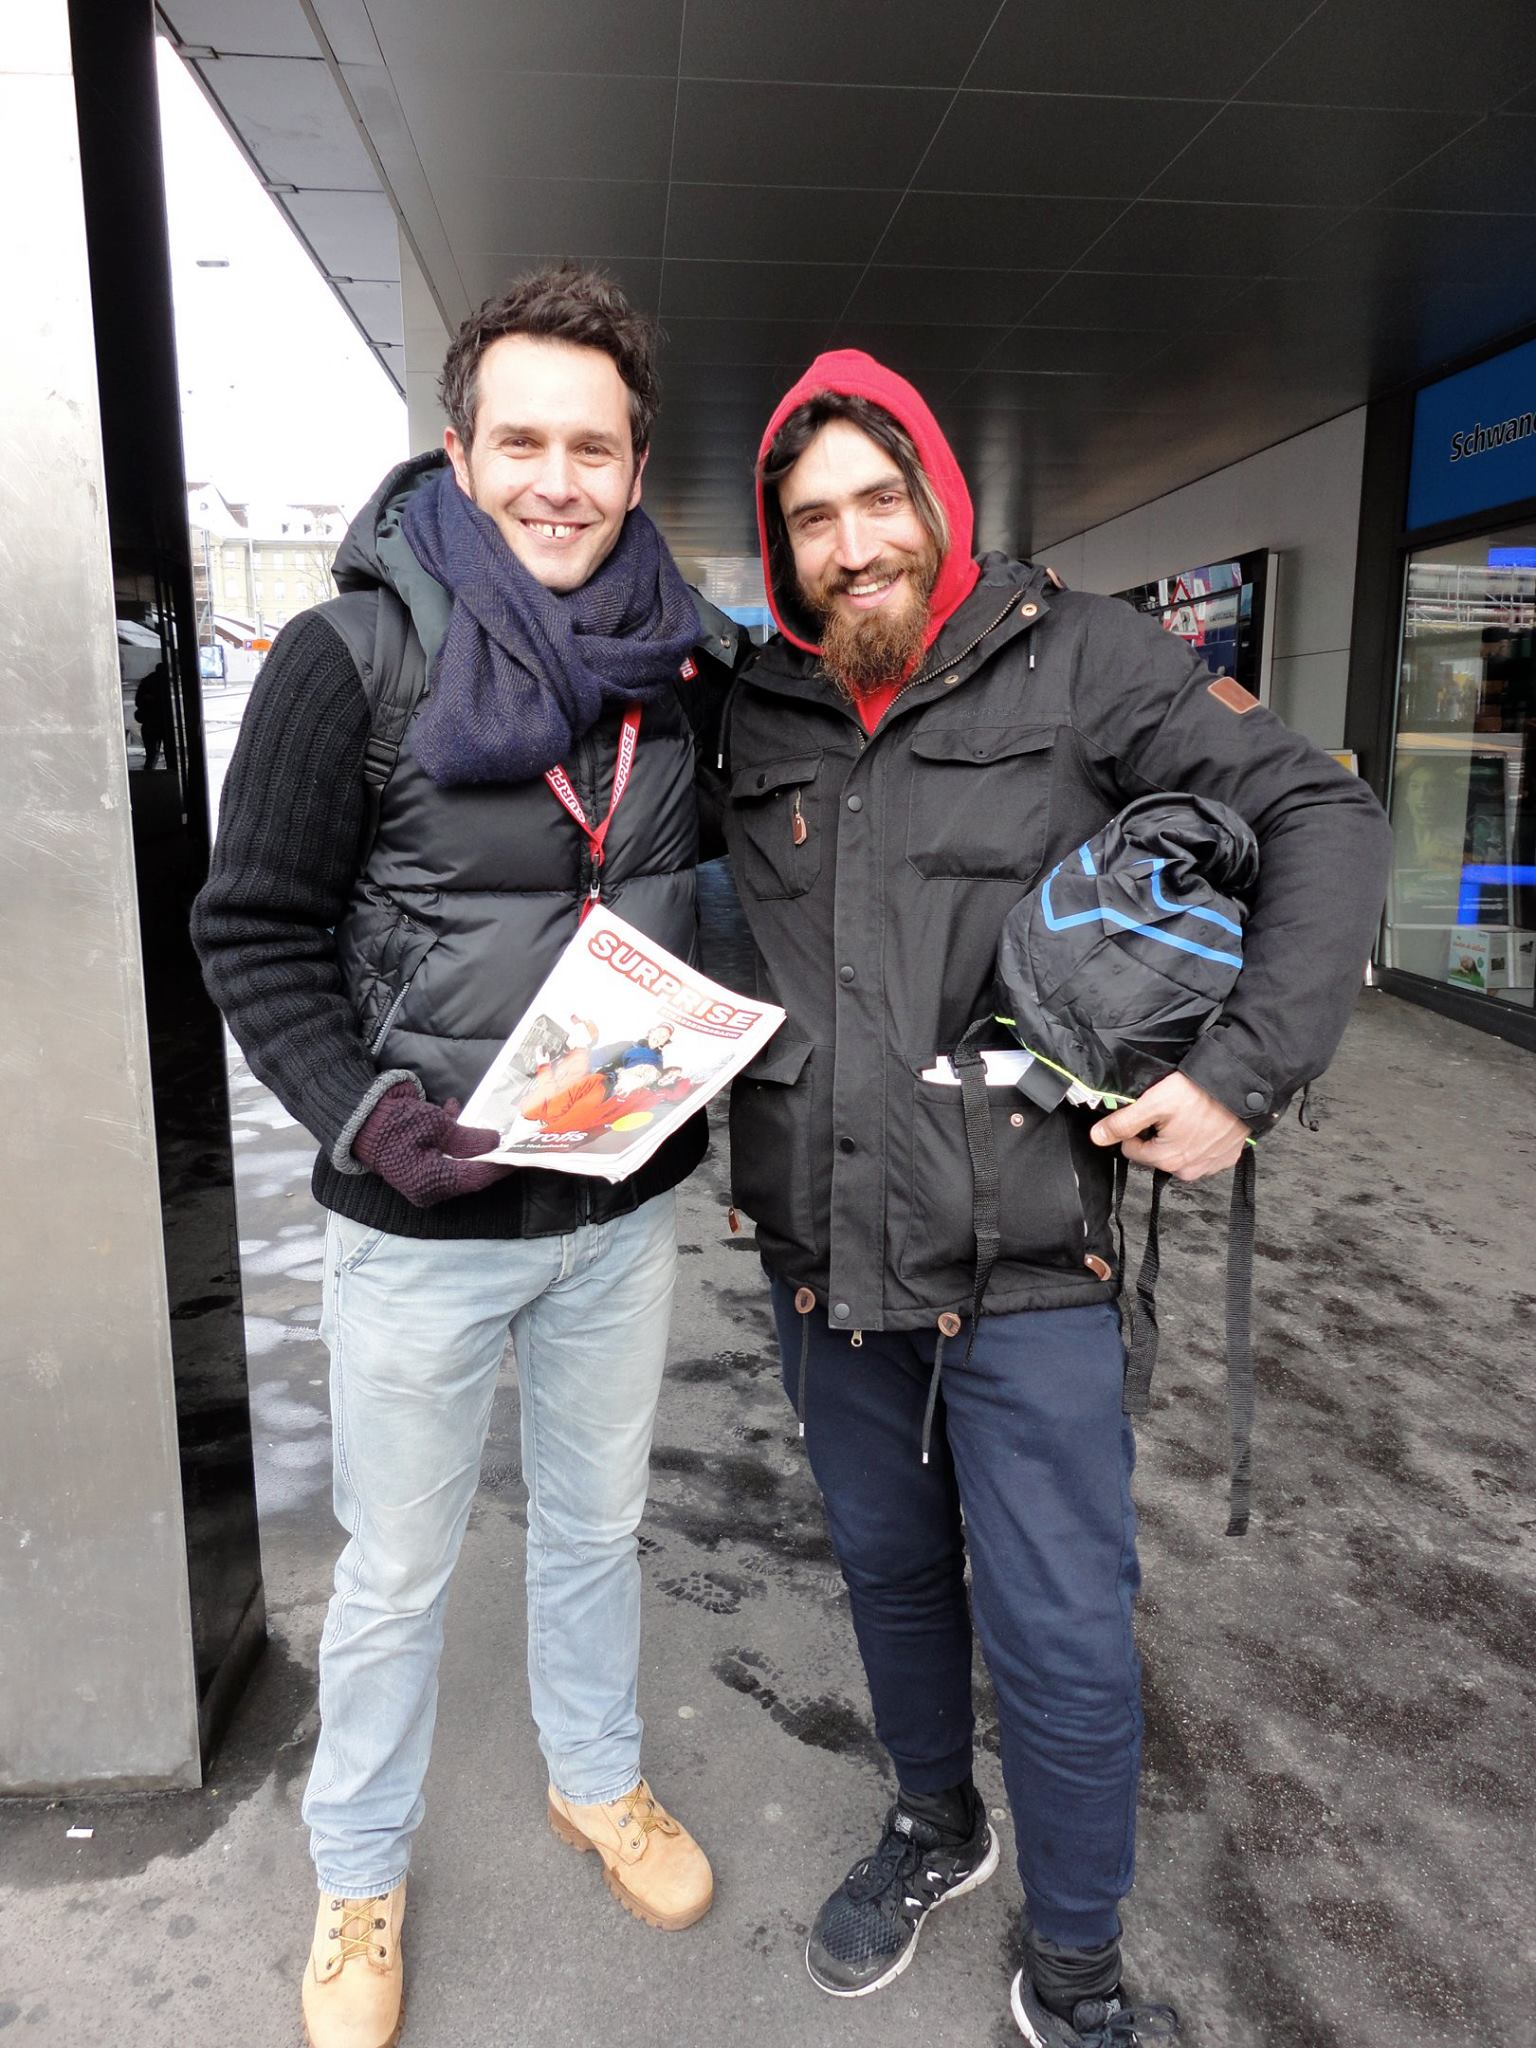 Surprise reader Marco (L) tries his hand at selling a street paper in Bern, 2015.